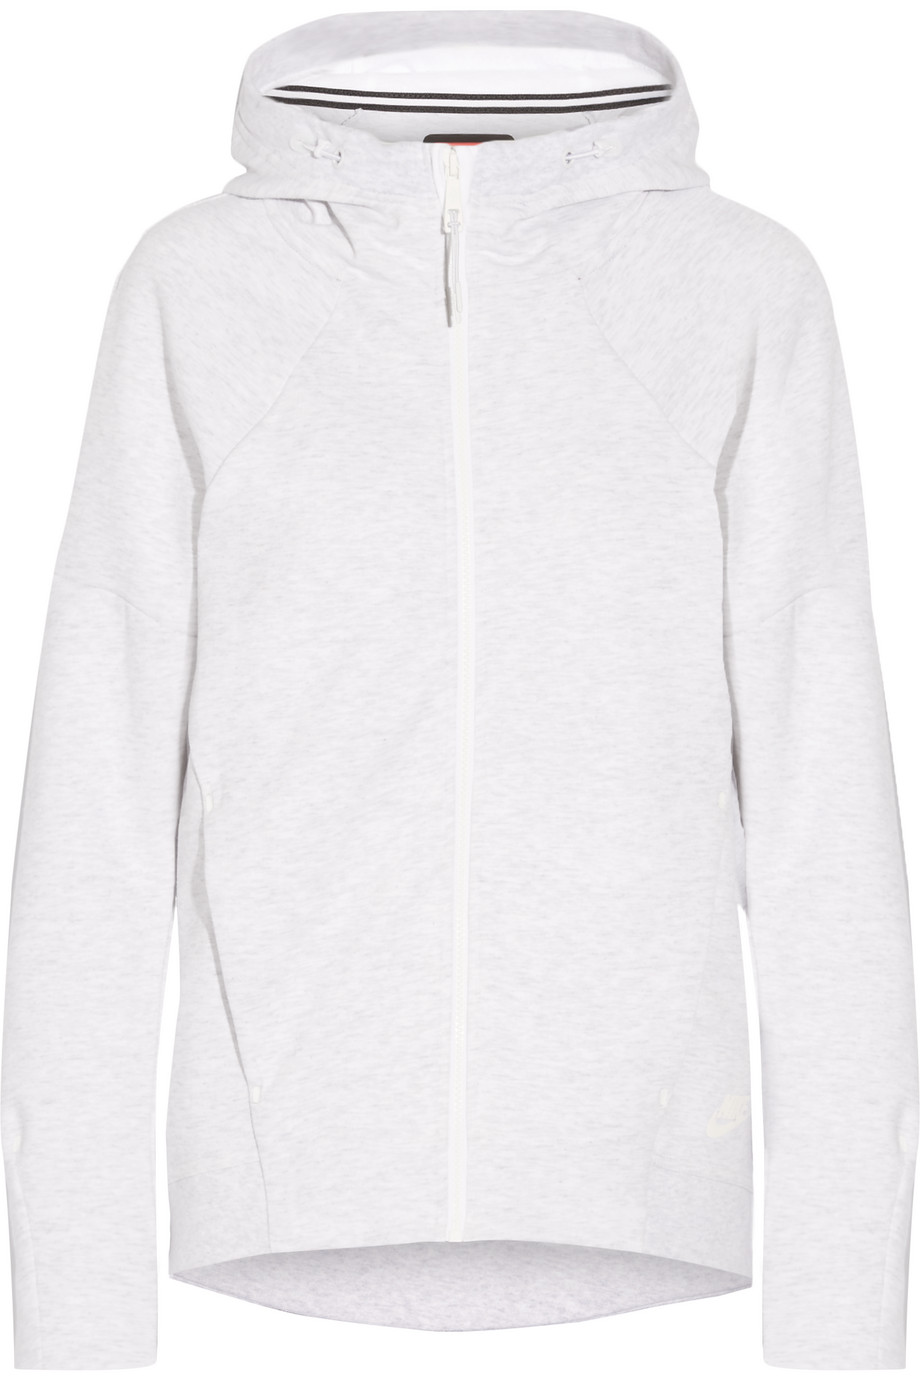 Nike Tech Fleece Cotton-Blend Jersey Hooded Top, White, Women's, Size: XS